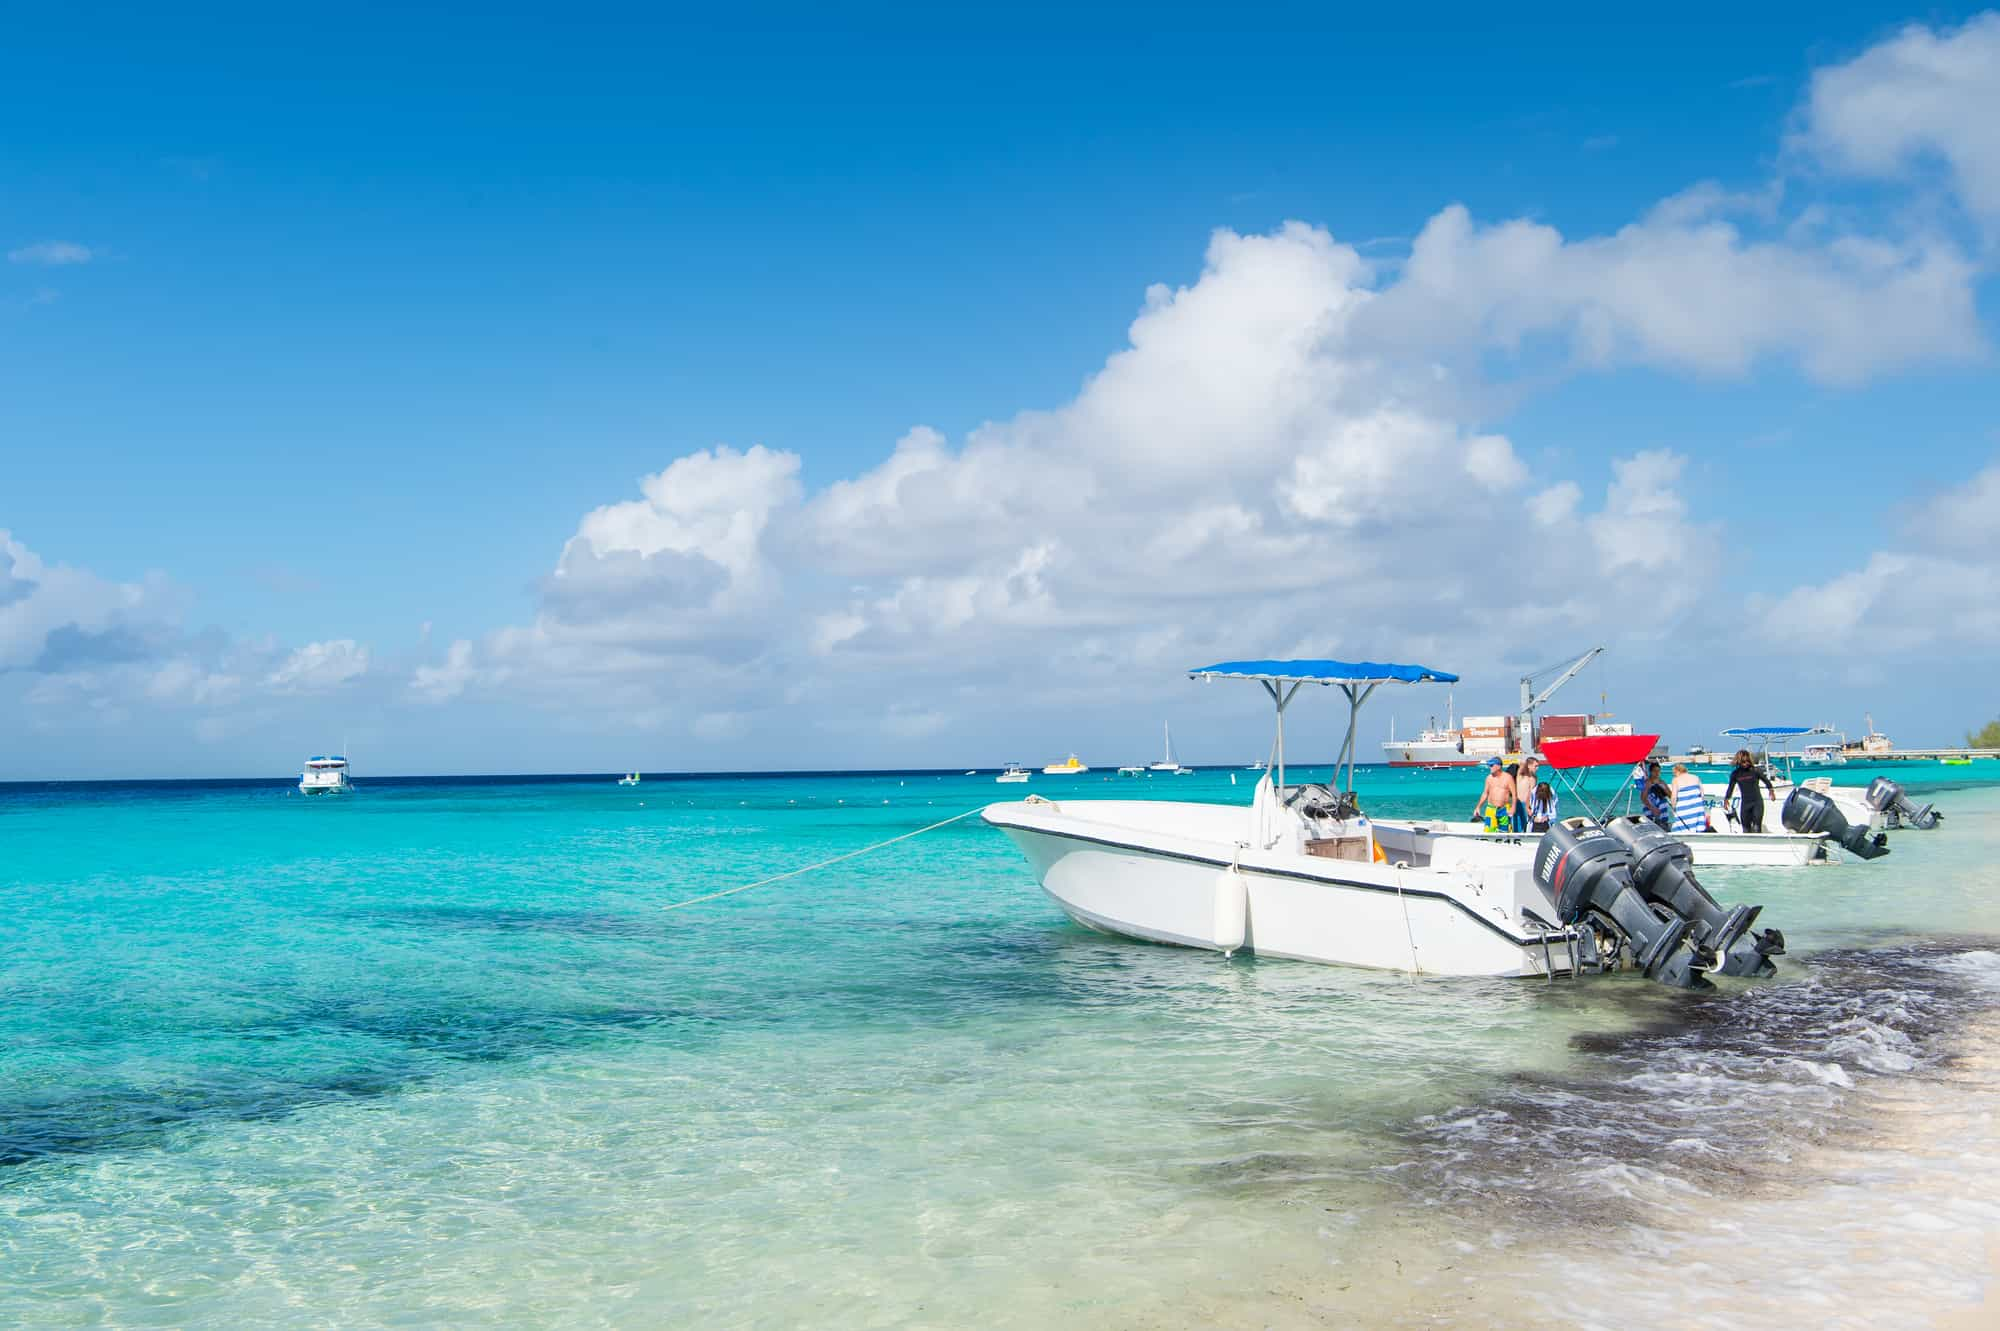 Boats laying on the beach at Grand Turk